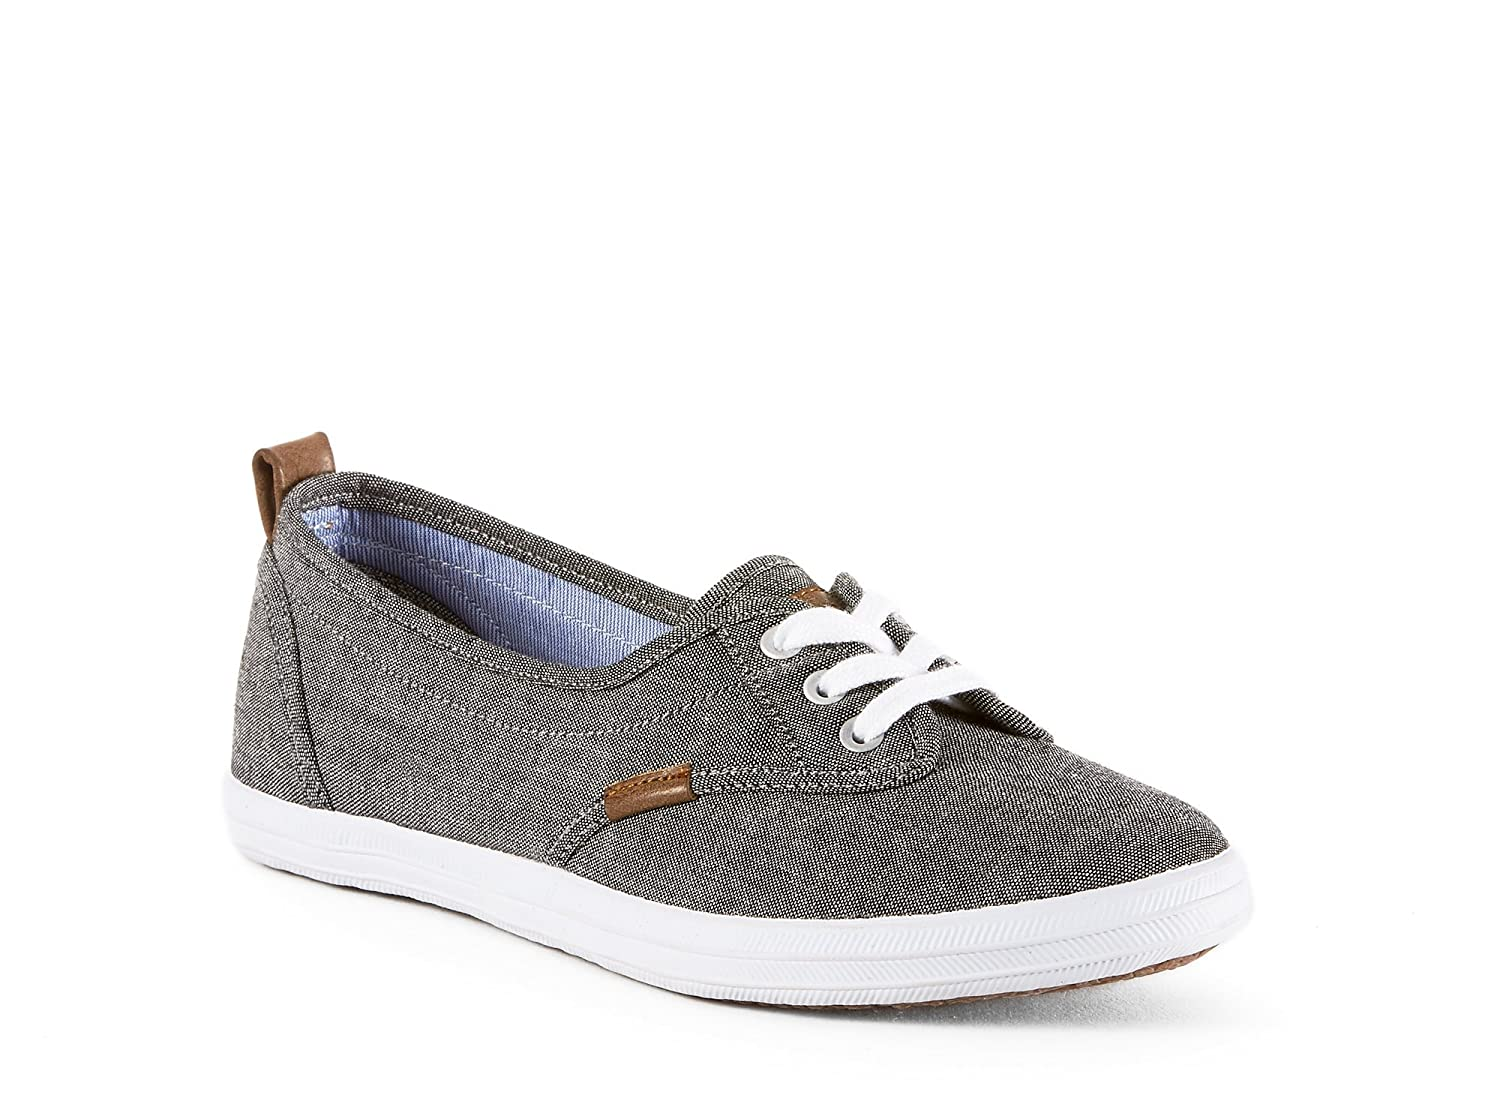 Jammers Womens Low Cut Skateboarding Style Shoes - Casual & Comfortable - Trendy Fashion Sneakers Made from Canvas - Perfect for Spring Summer Fall 10894005